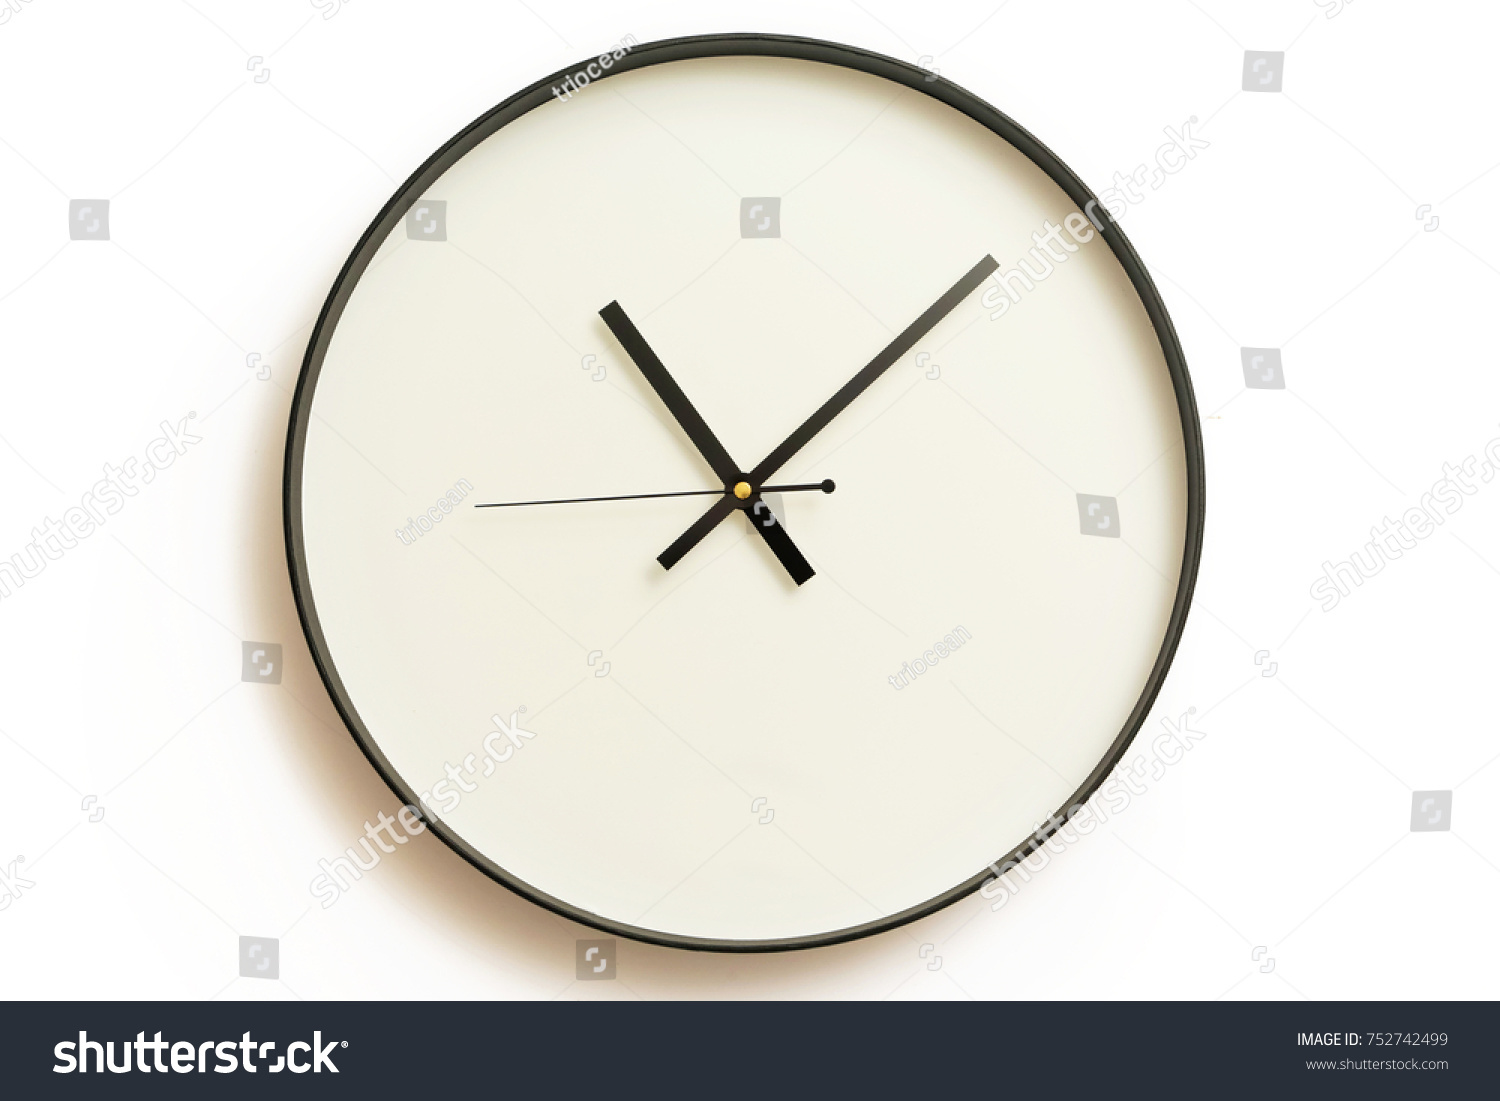 Classic design wall clock stock photo 752742499 shutterstock classic design wall clock ccuart Choice Image